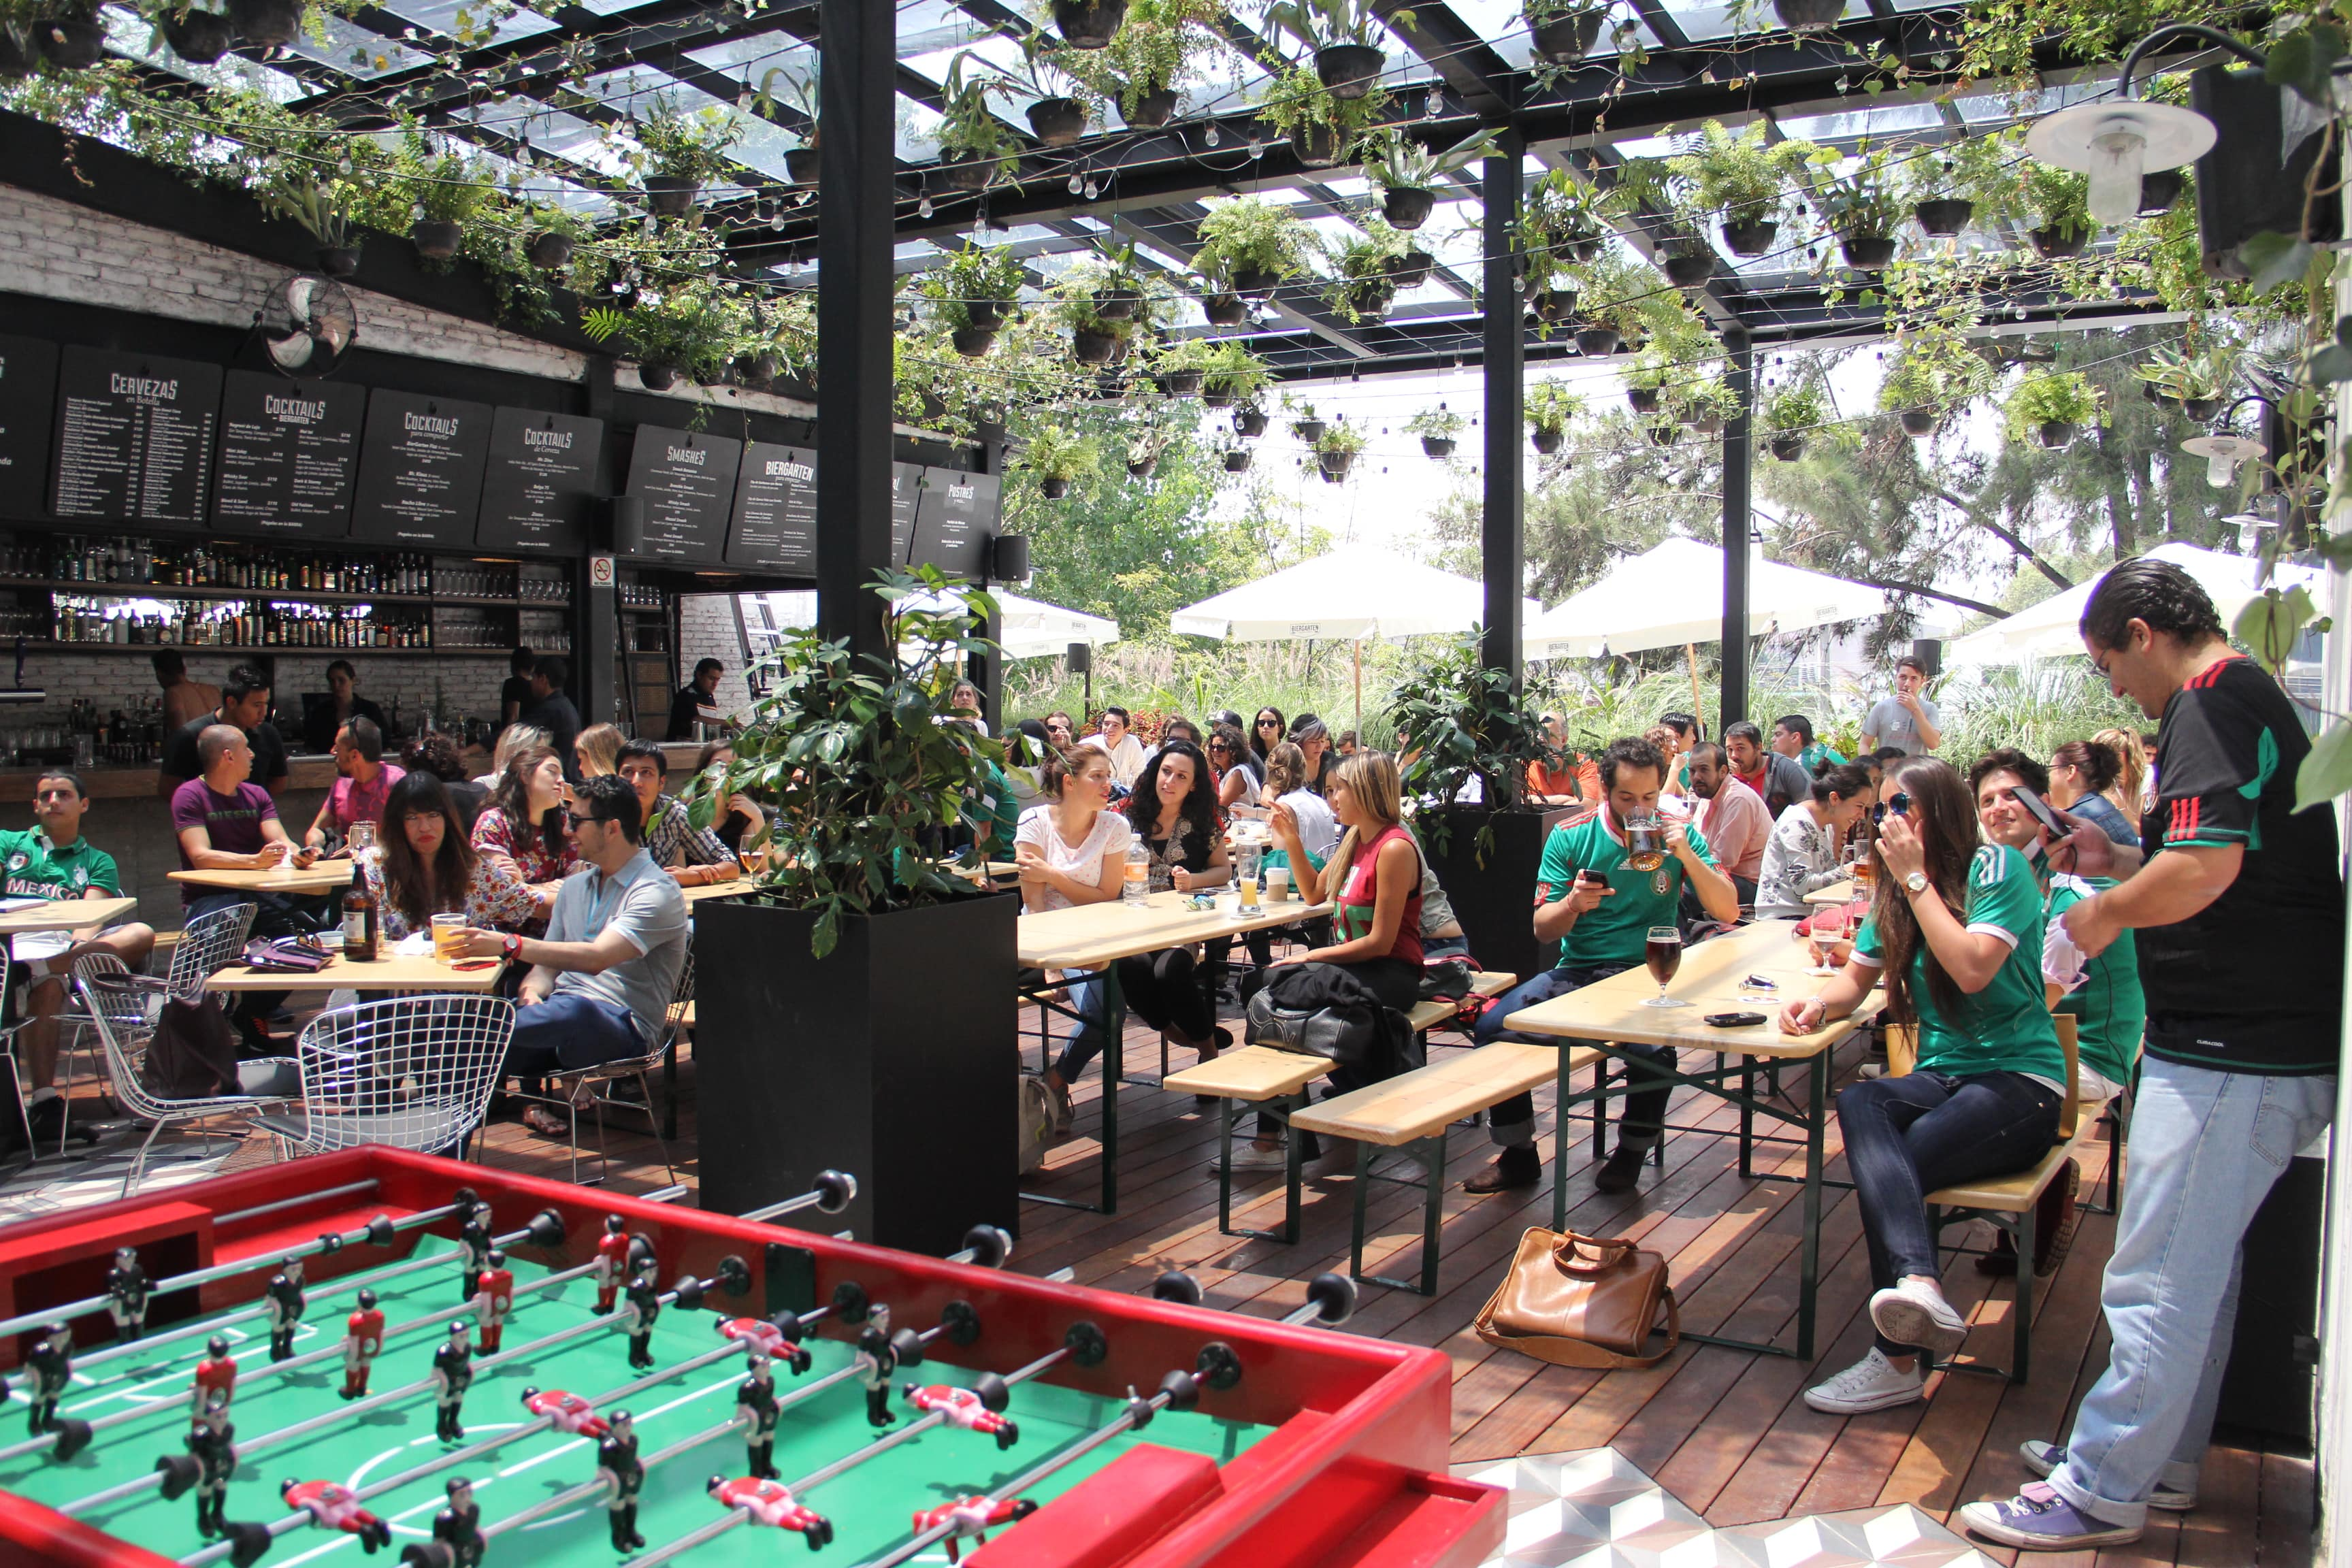 Biergarten Roma and their famous foosball tables | Courtesy of Biergarten Roma